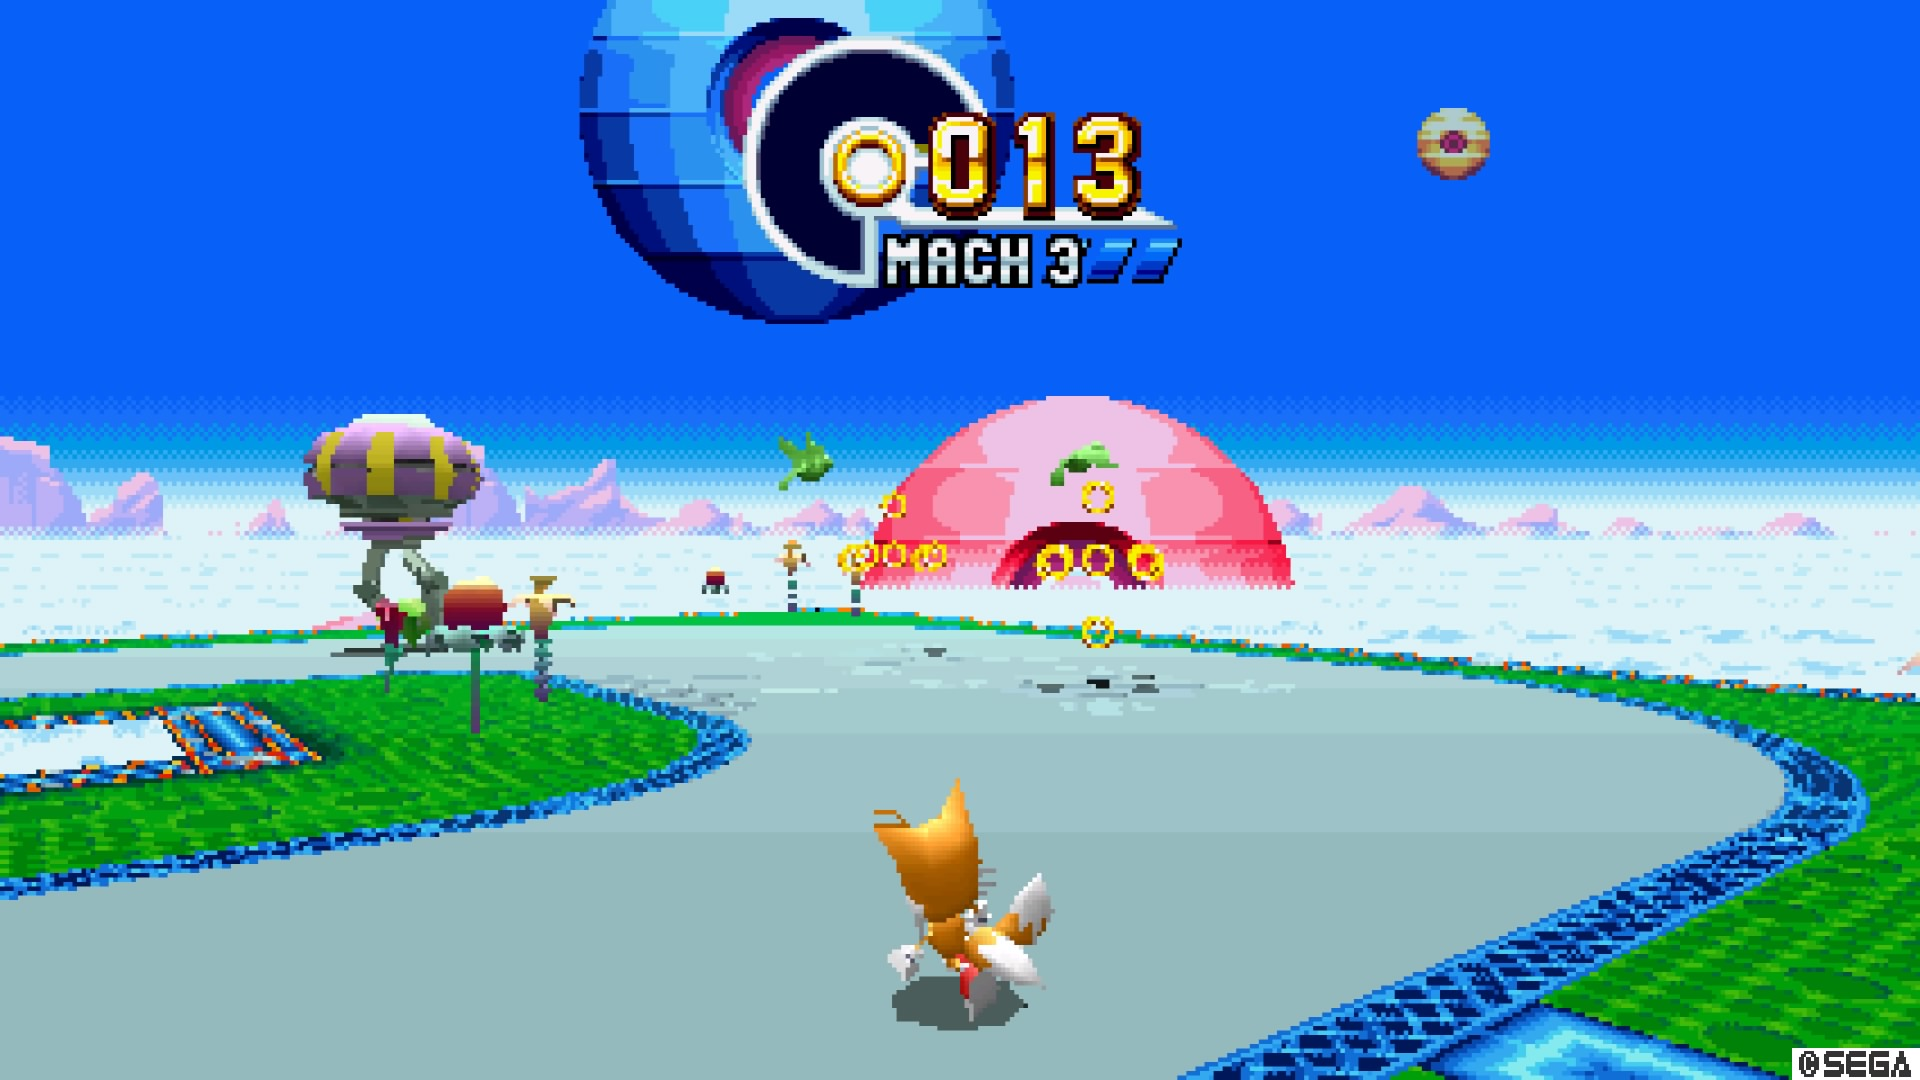 Sonic Mania's special stage